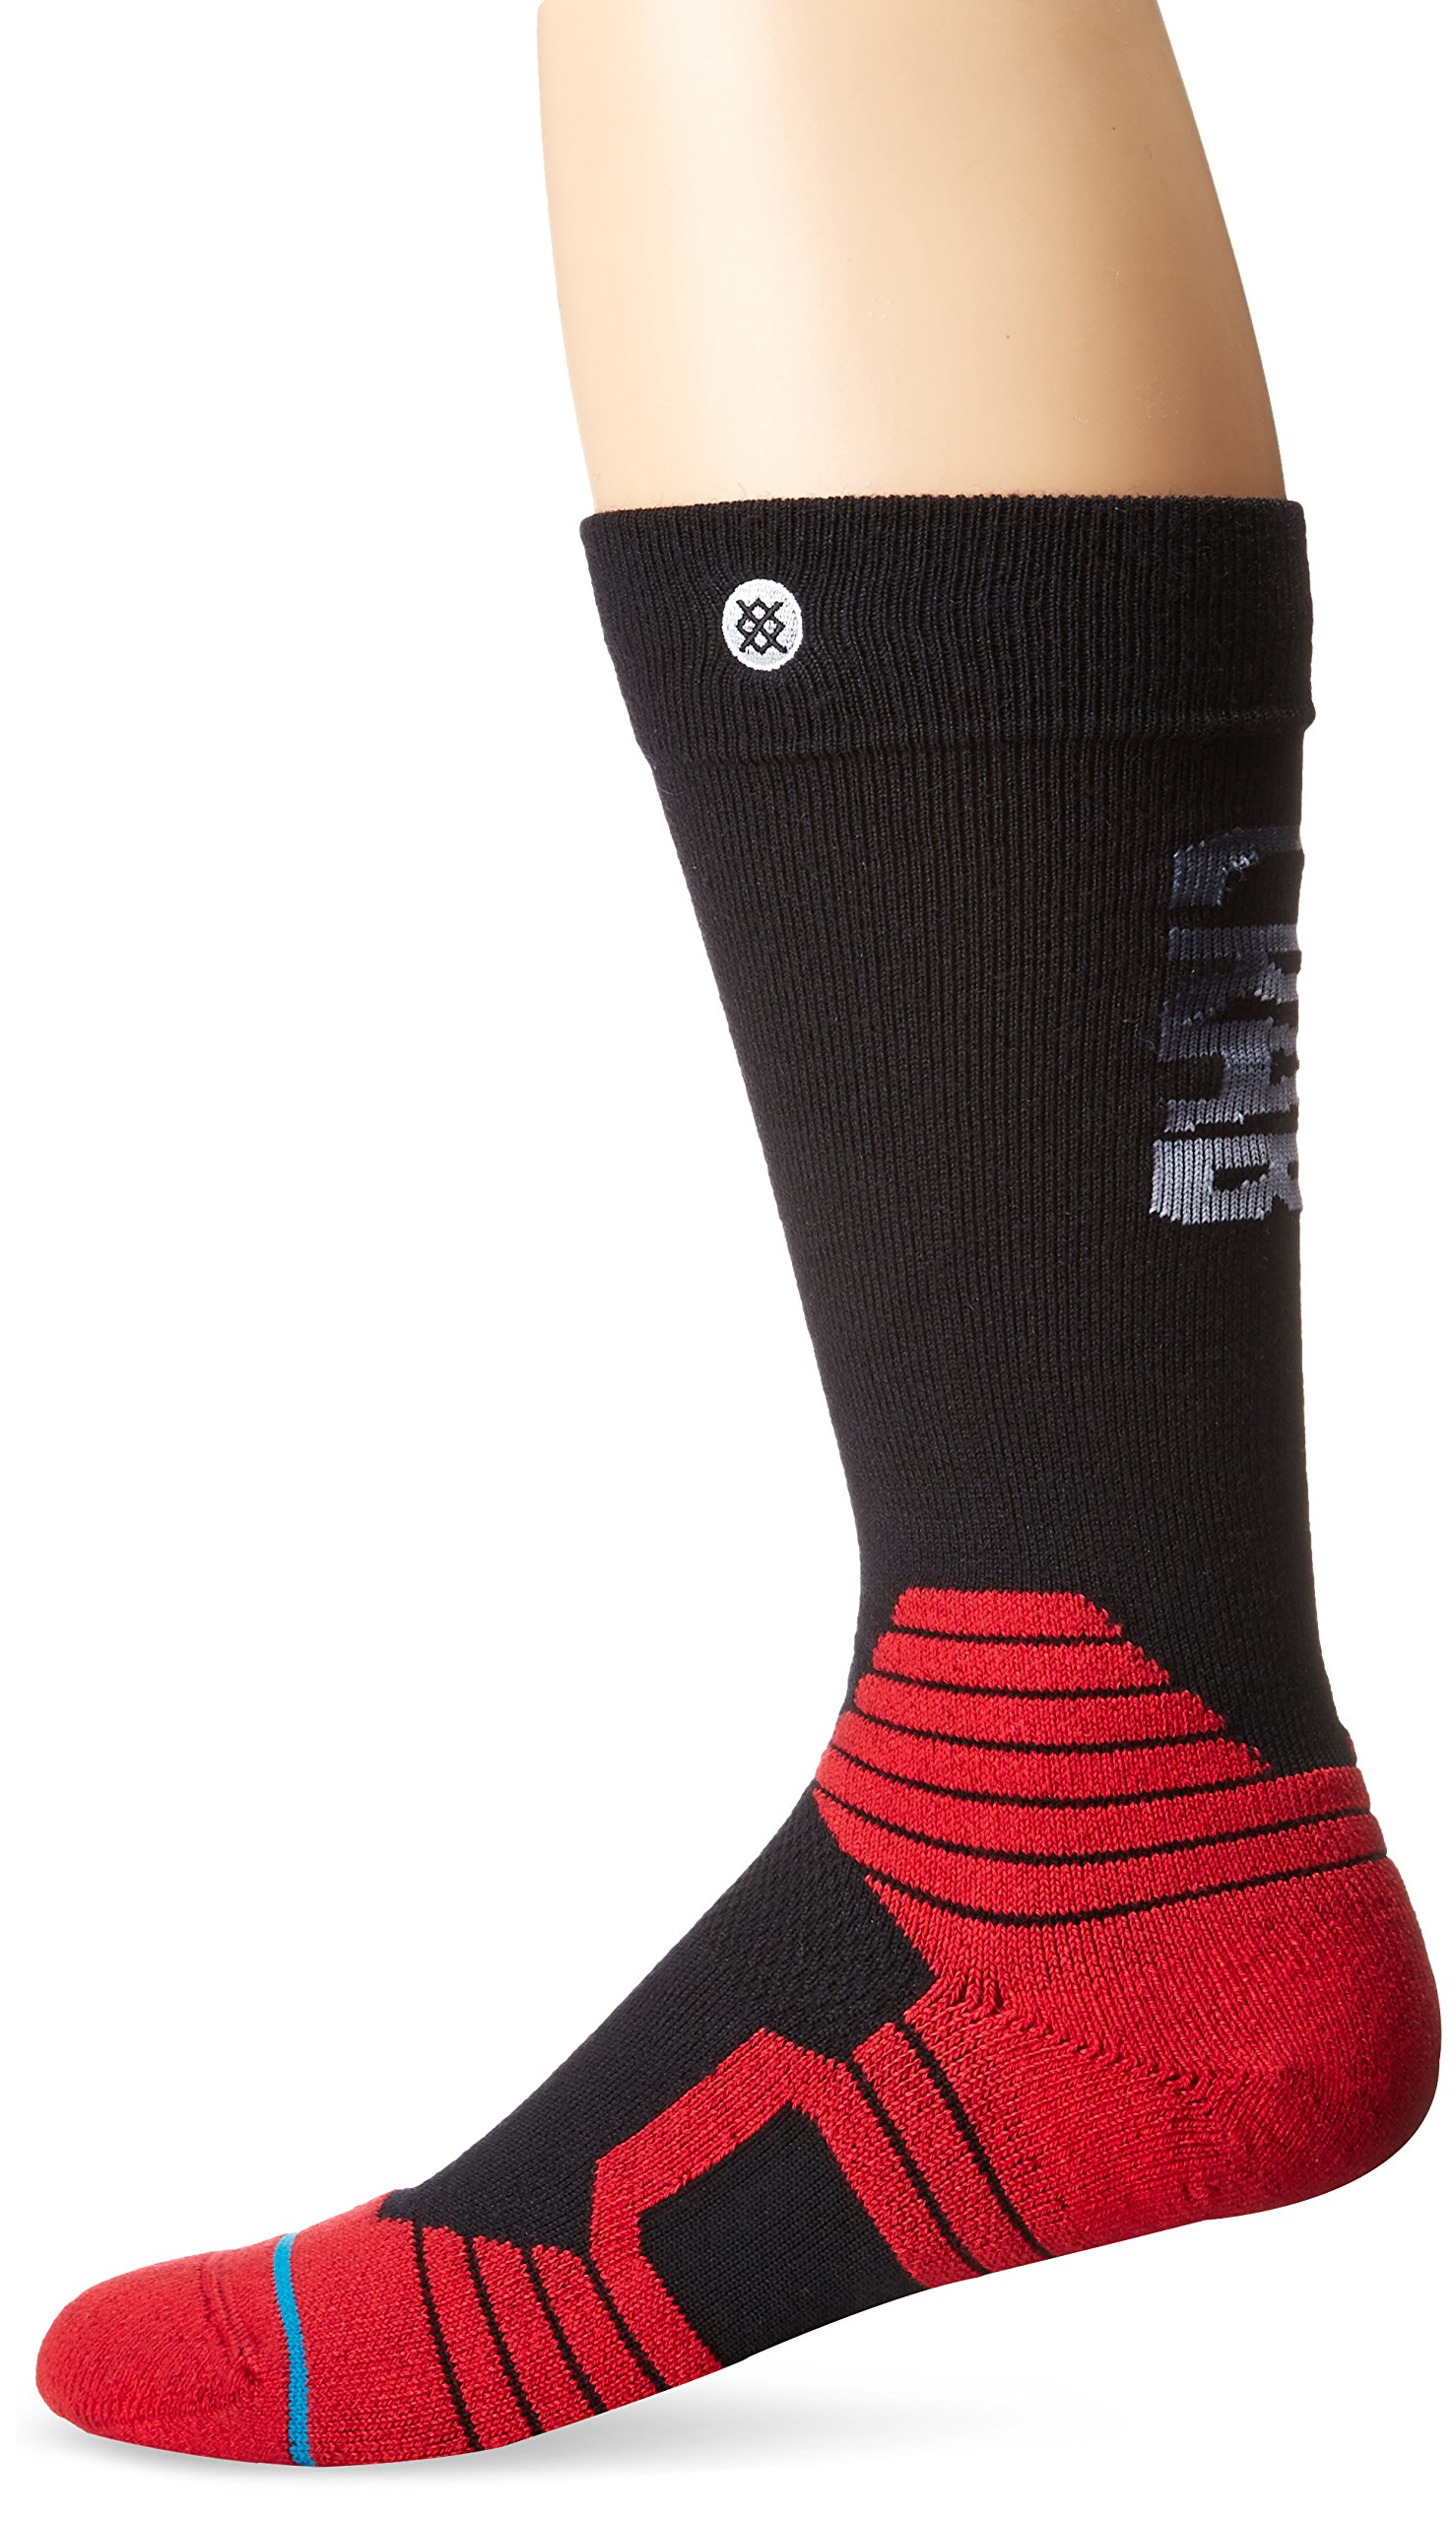 Stance Men's Crab Grab Pinch Merino Wool Insulating Graduated Compression Claw Over the Calf Arch Support Snowboard Sock, Black, L by Stance